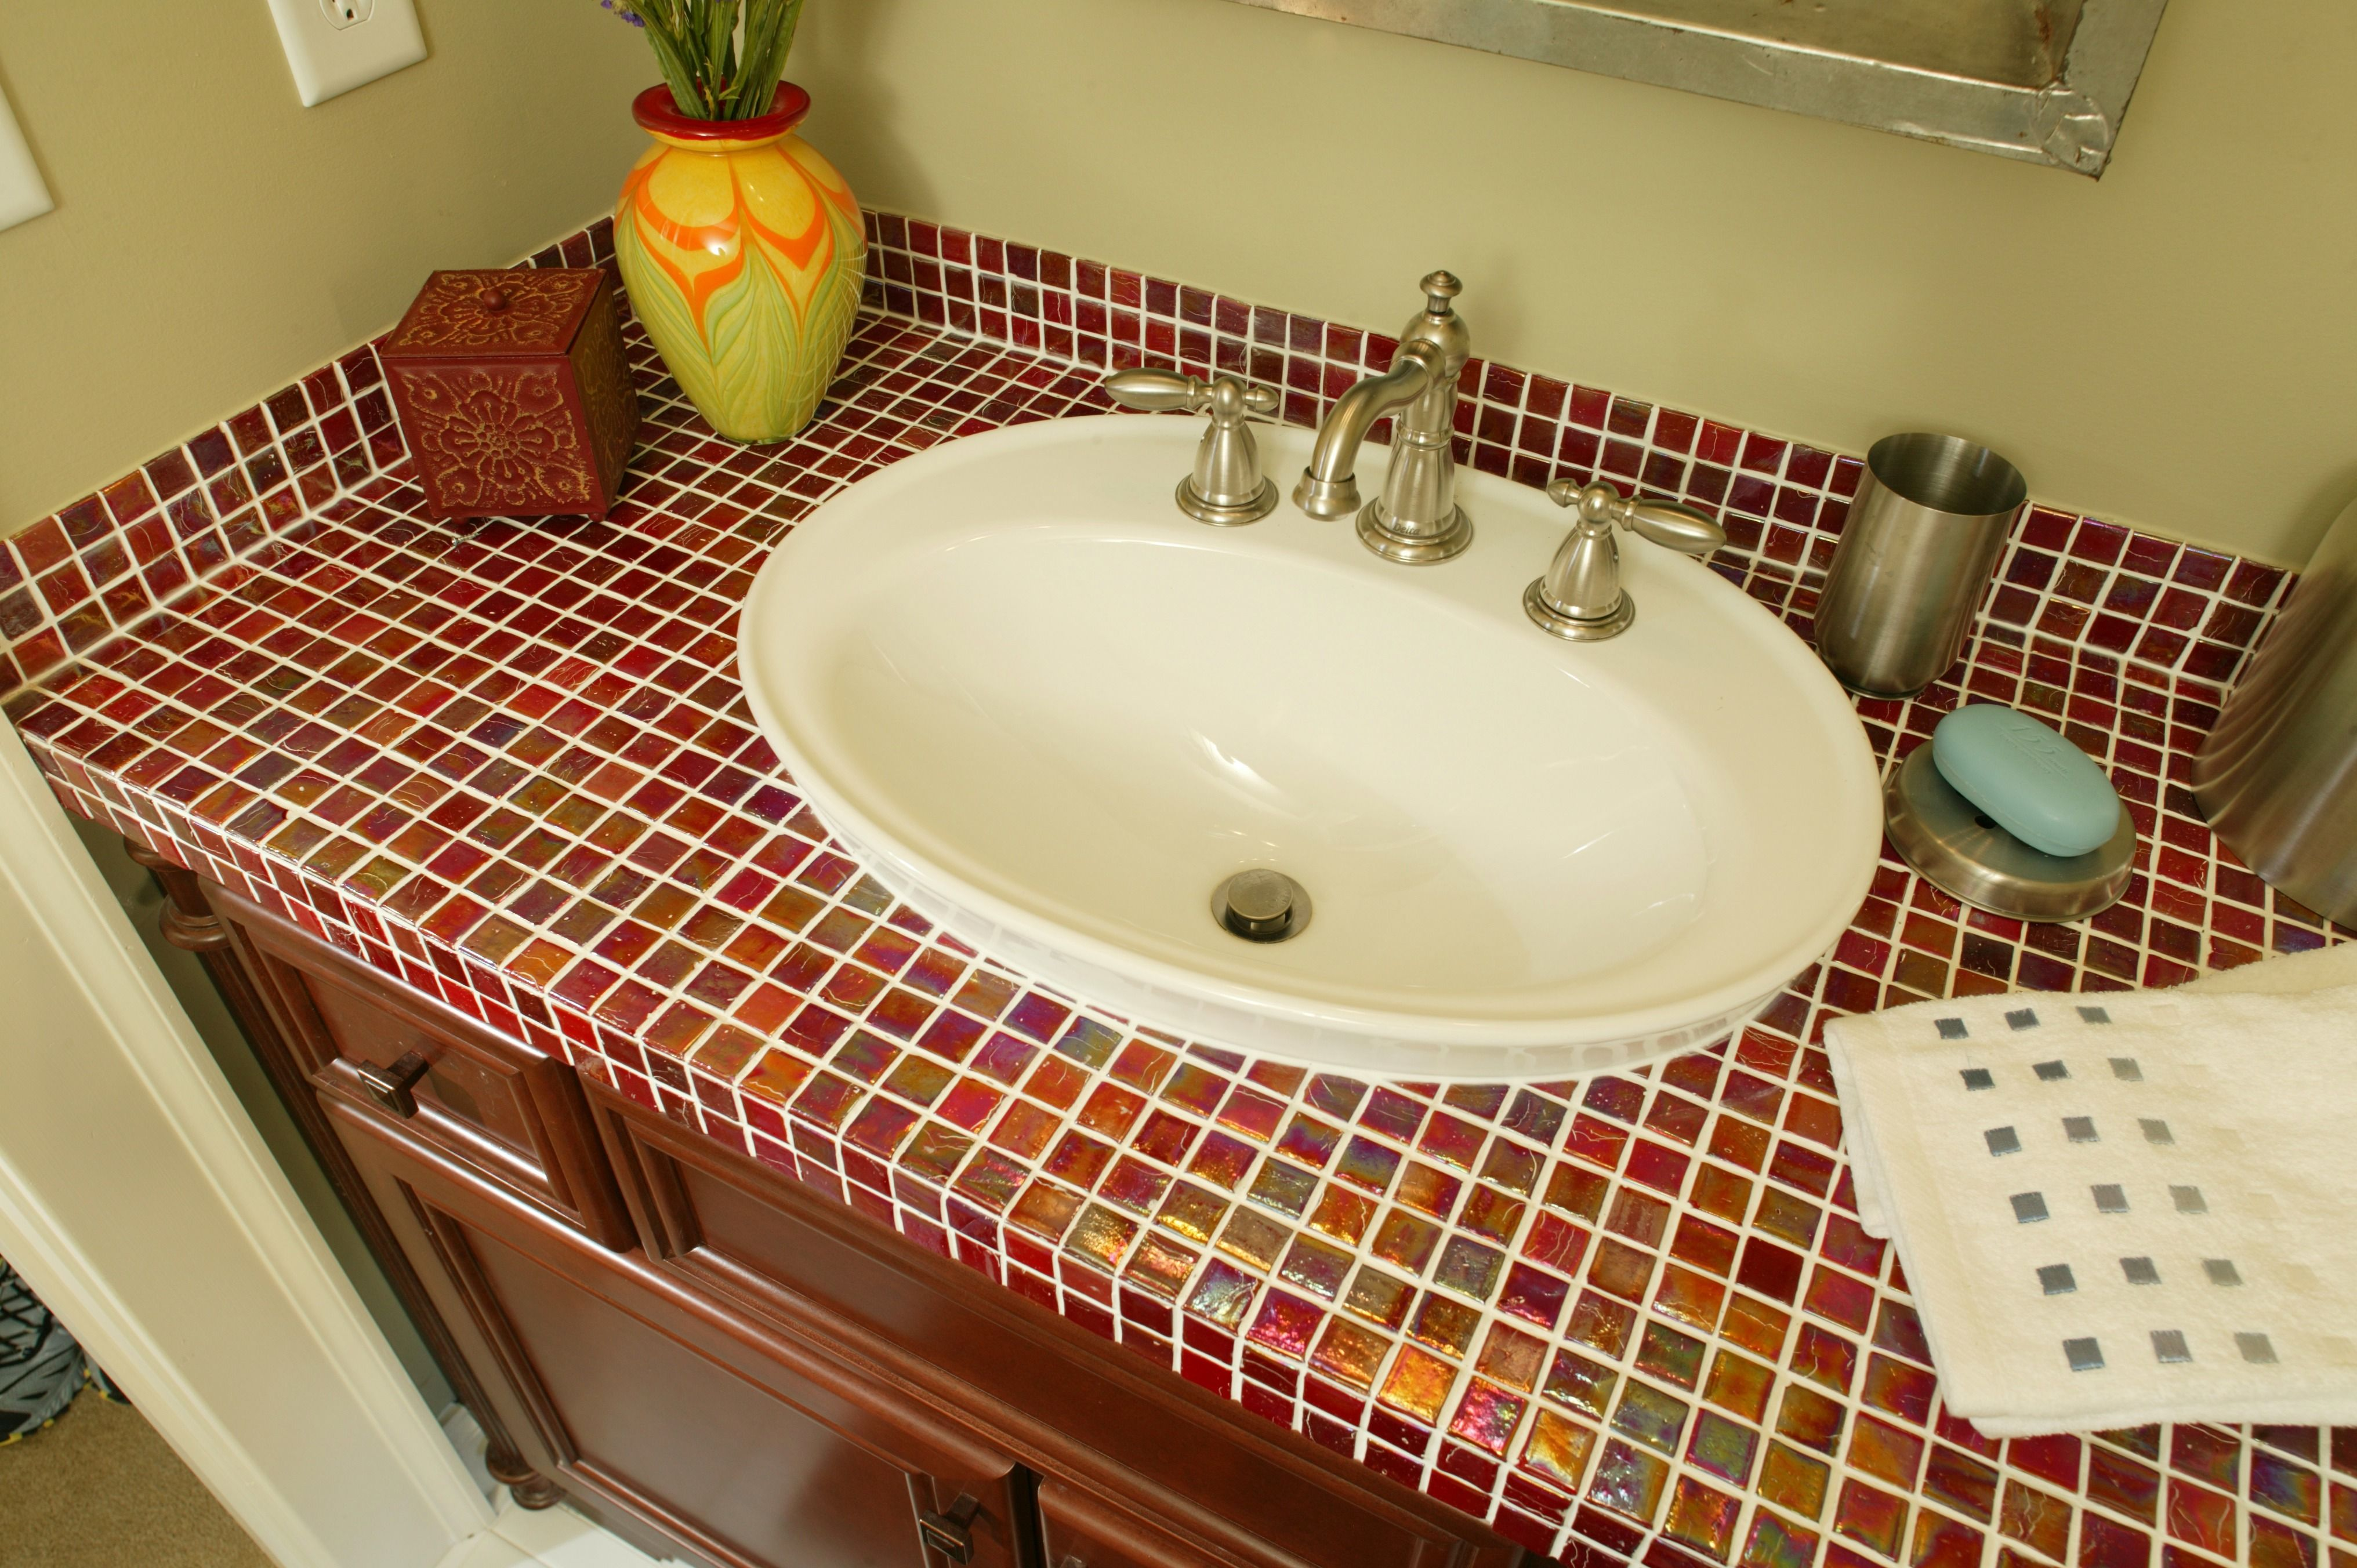 It Is Worth It To Refinish An Old Tub Or Sink | Pinterest | Small ...